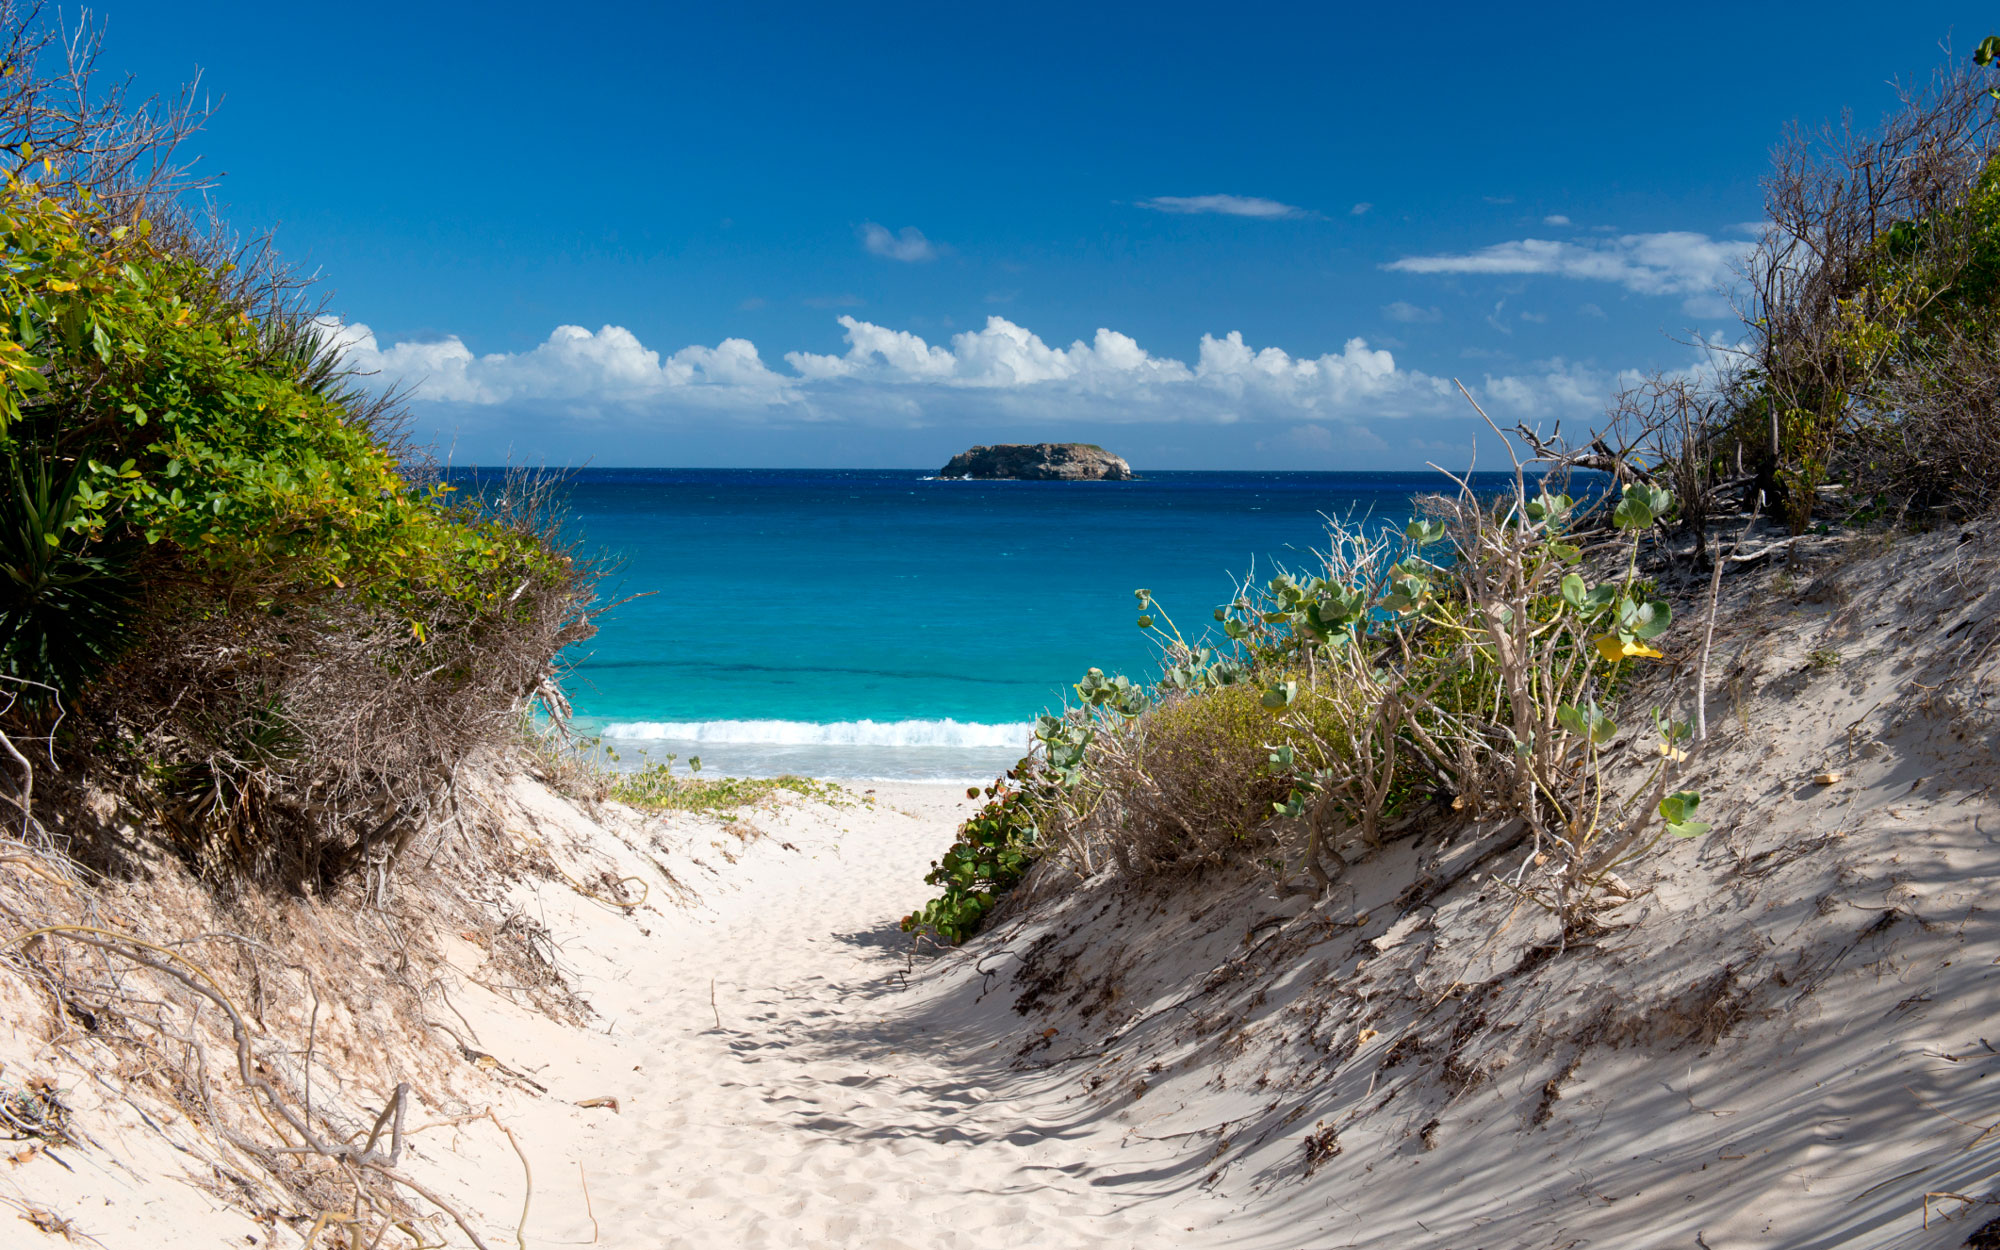 The World's Best Island Beaches:   No. 15 St. Bart's